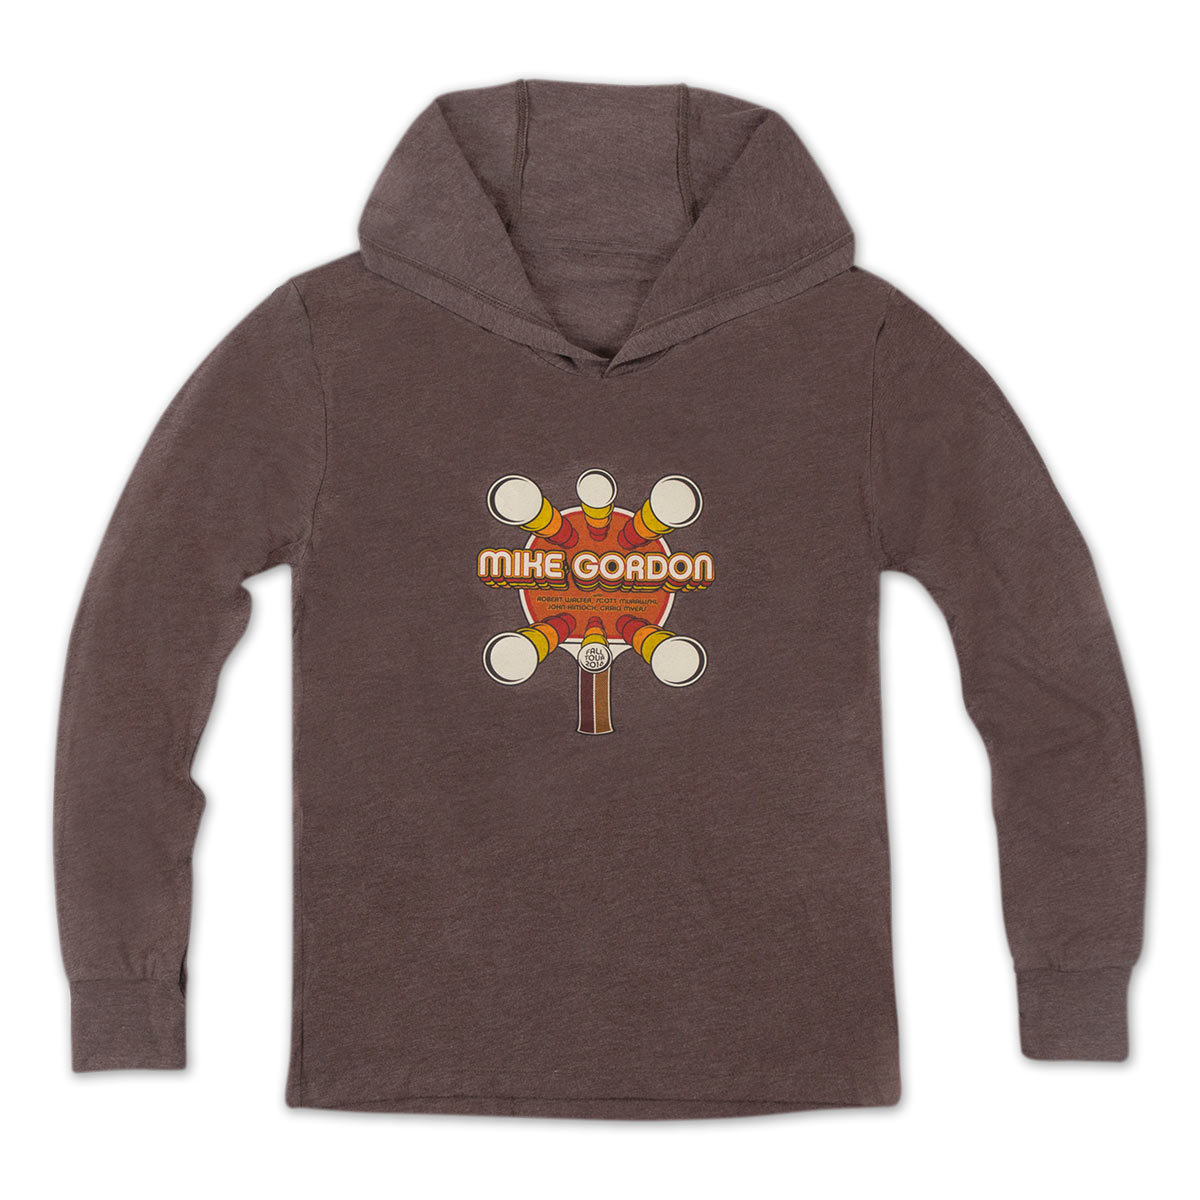 Mike Gordon Ping Pong Tour Lightweight Pullover Hoodie